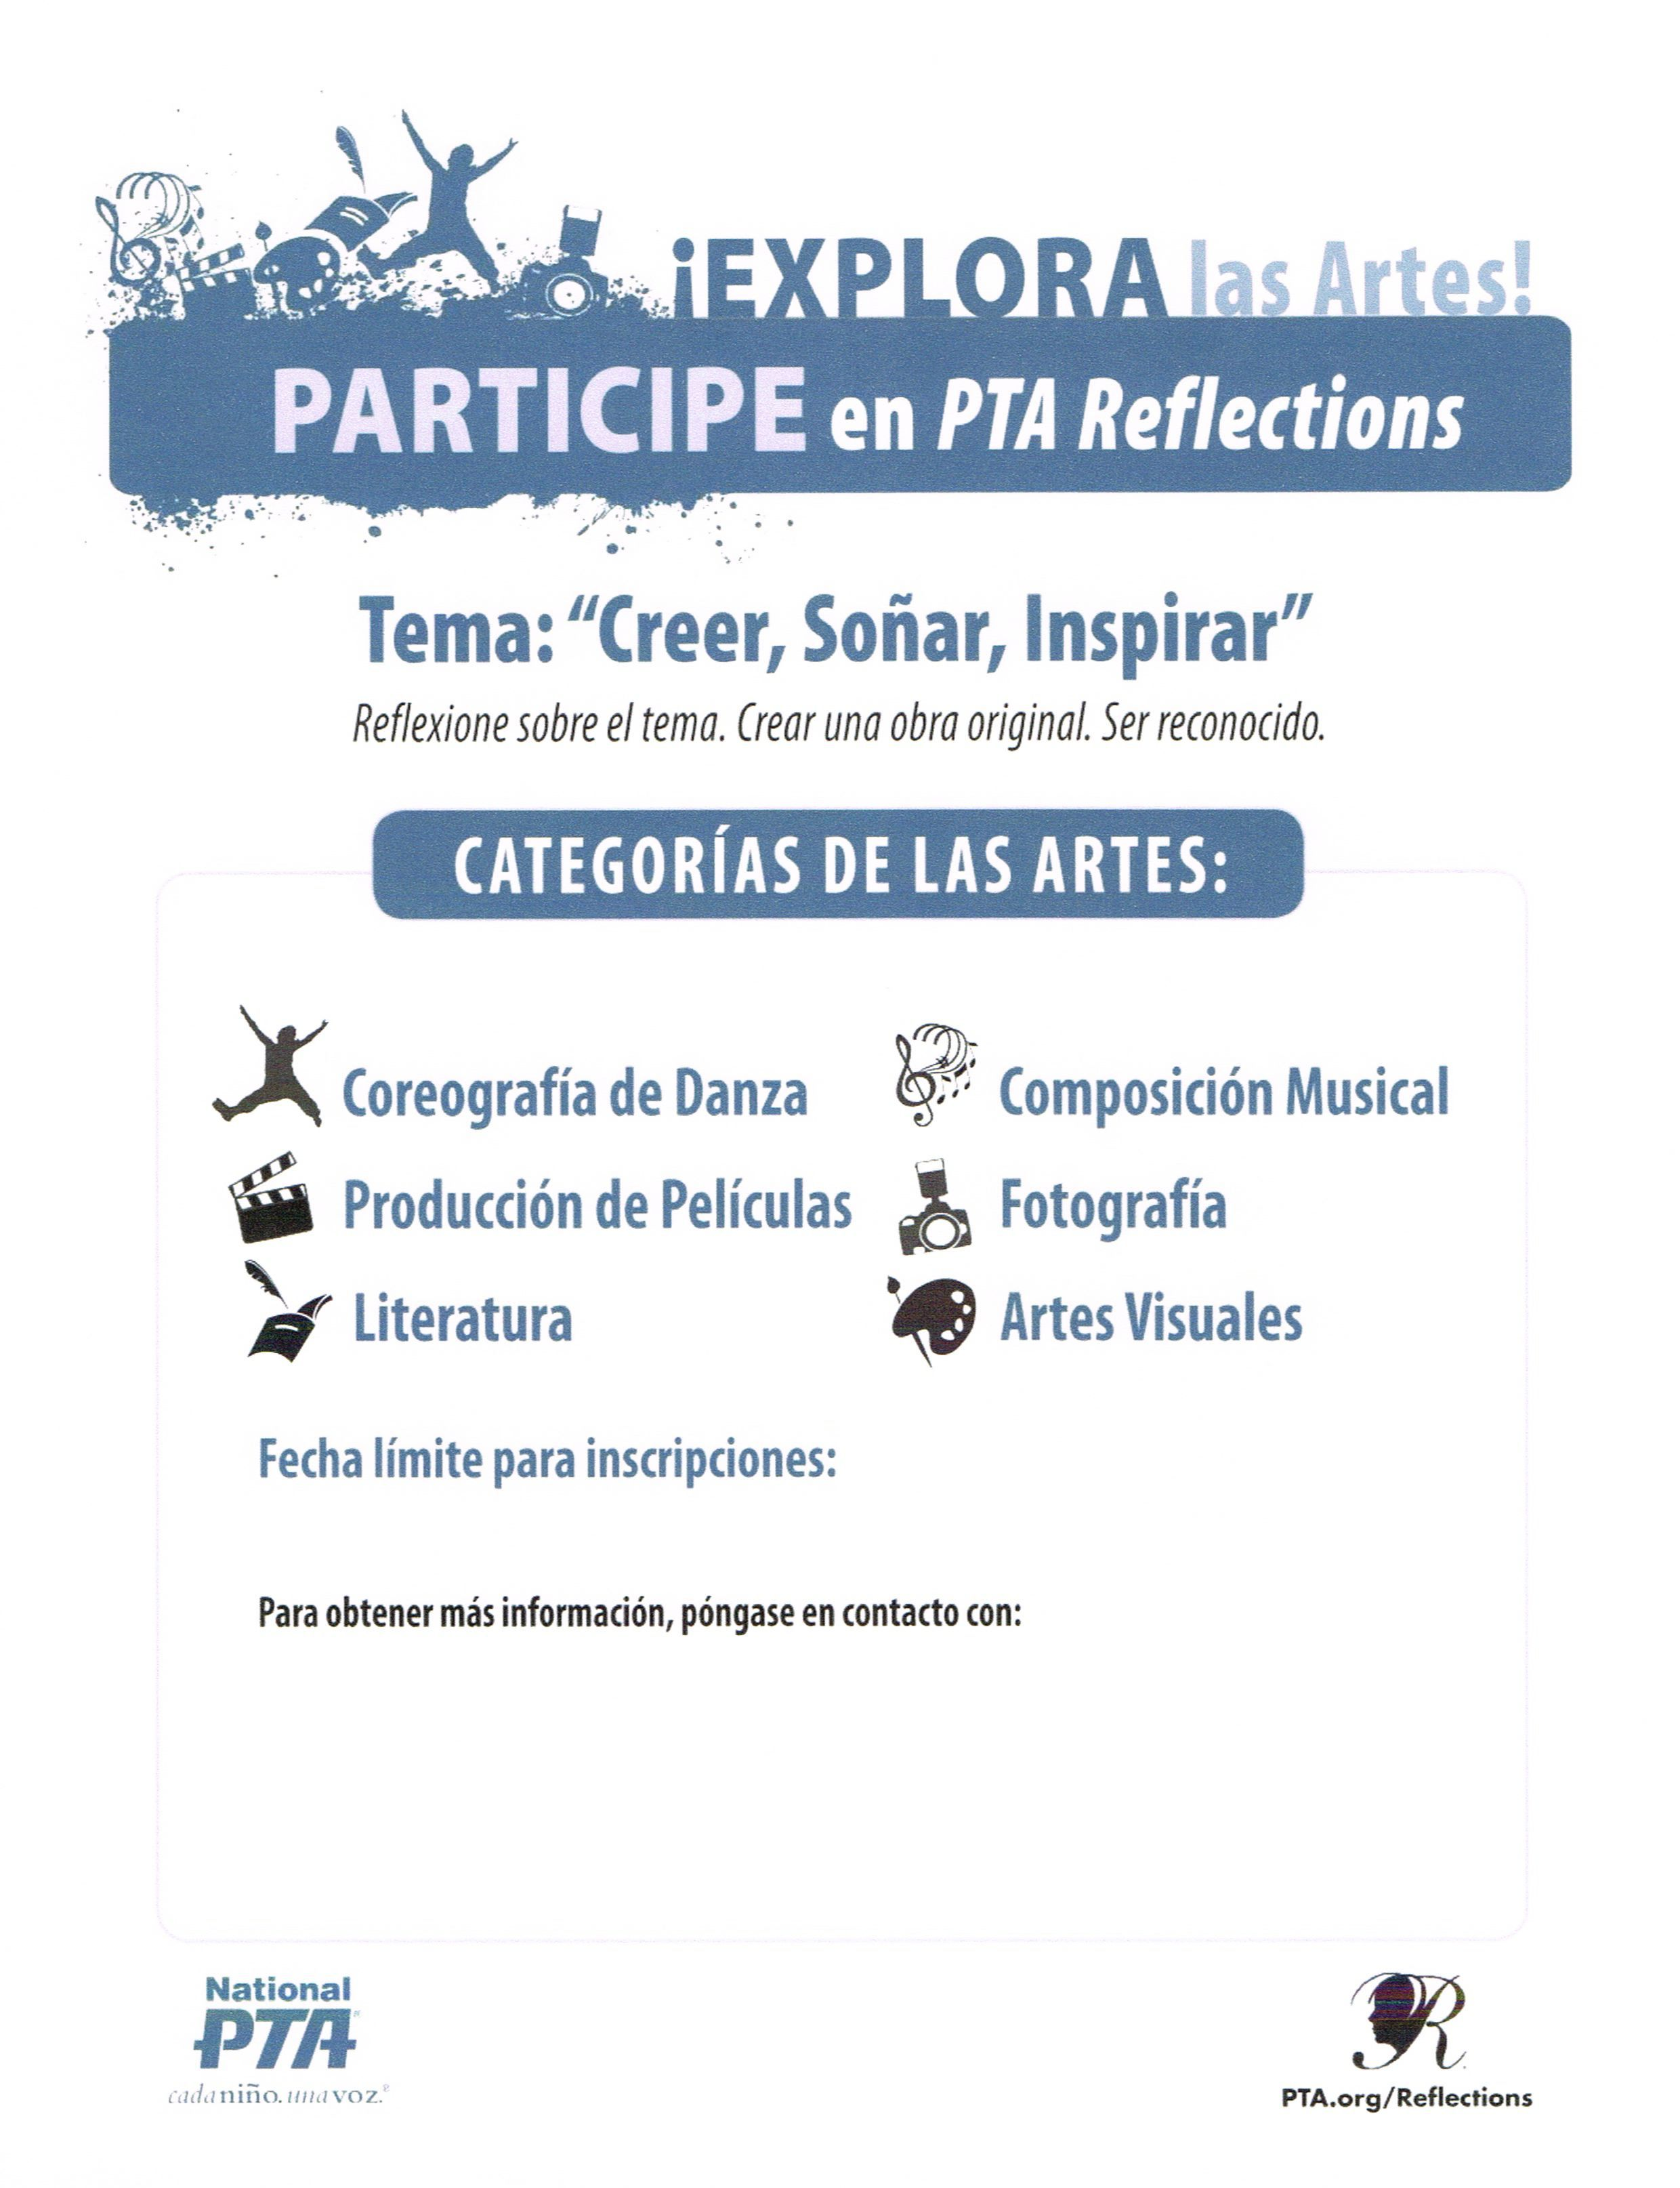 Spanish Version Of The Reflections Flyer Find At This Link